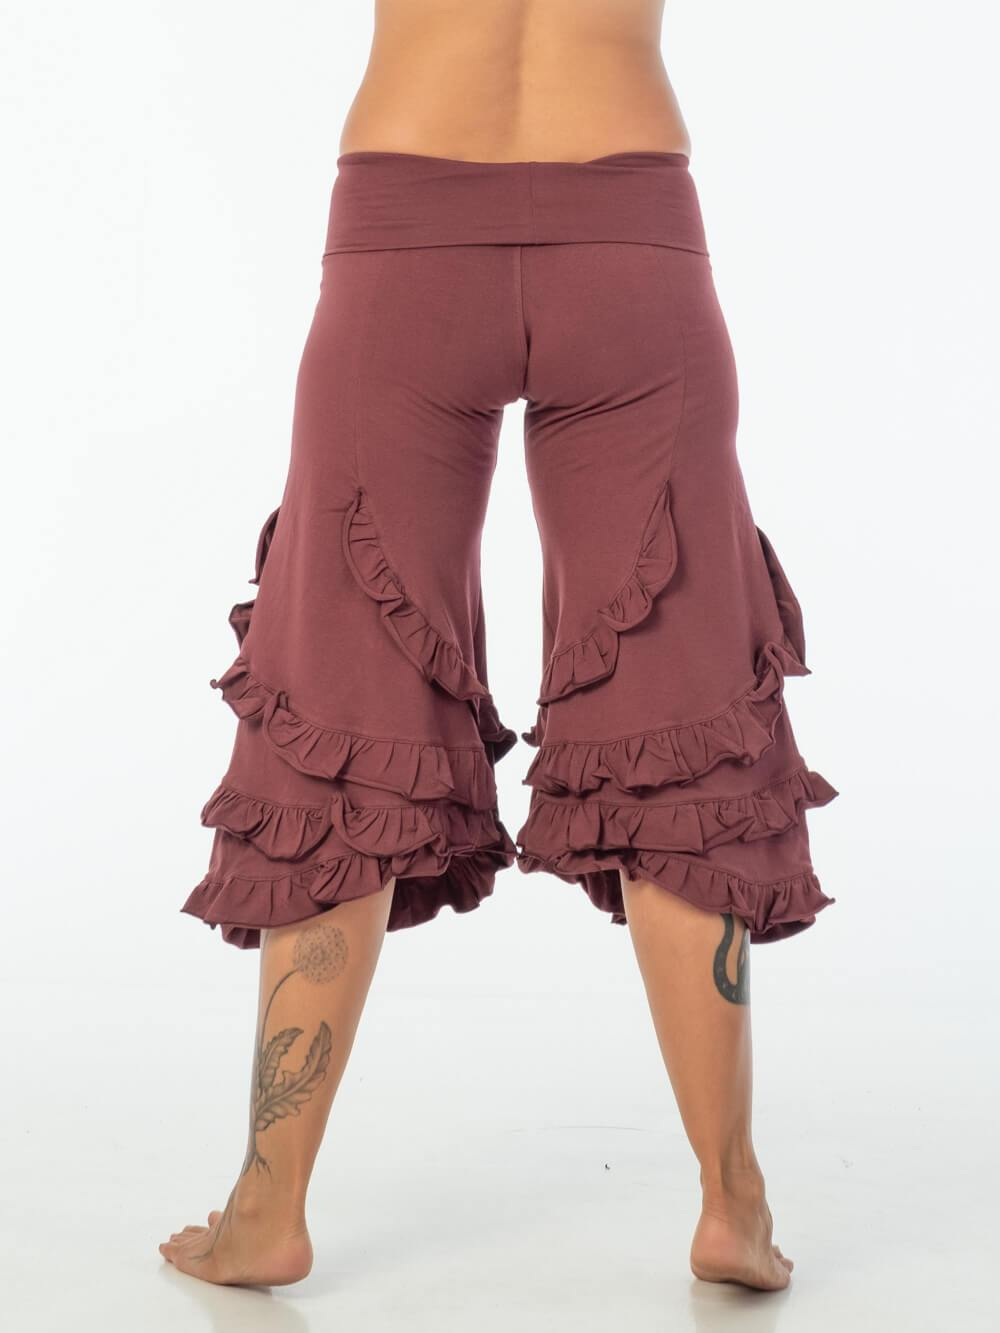 CARAUCCI women's ruffle bloomer pants are shown in ruby are made from cotton lycra jersey and have a loose fit silhouette.